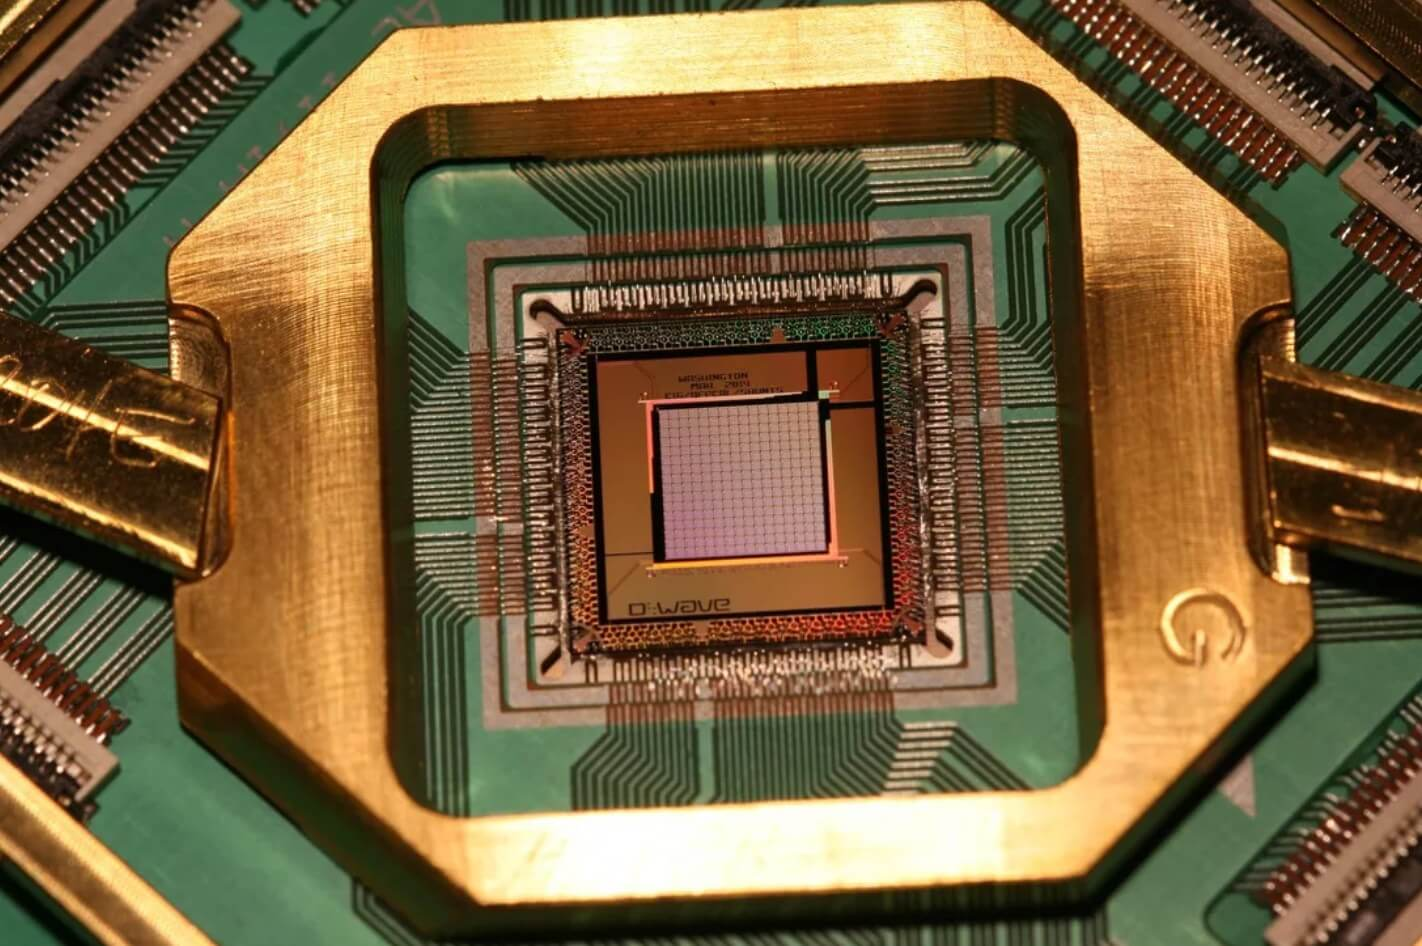 Los Alamos National Laboratory is buying a 5,000-qubit quantum computer from D-Wave